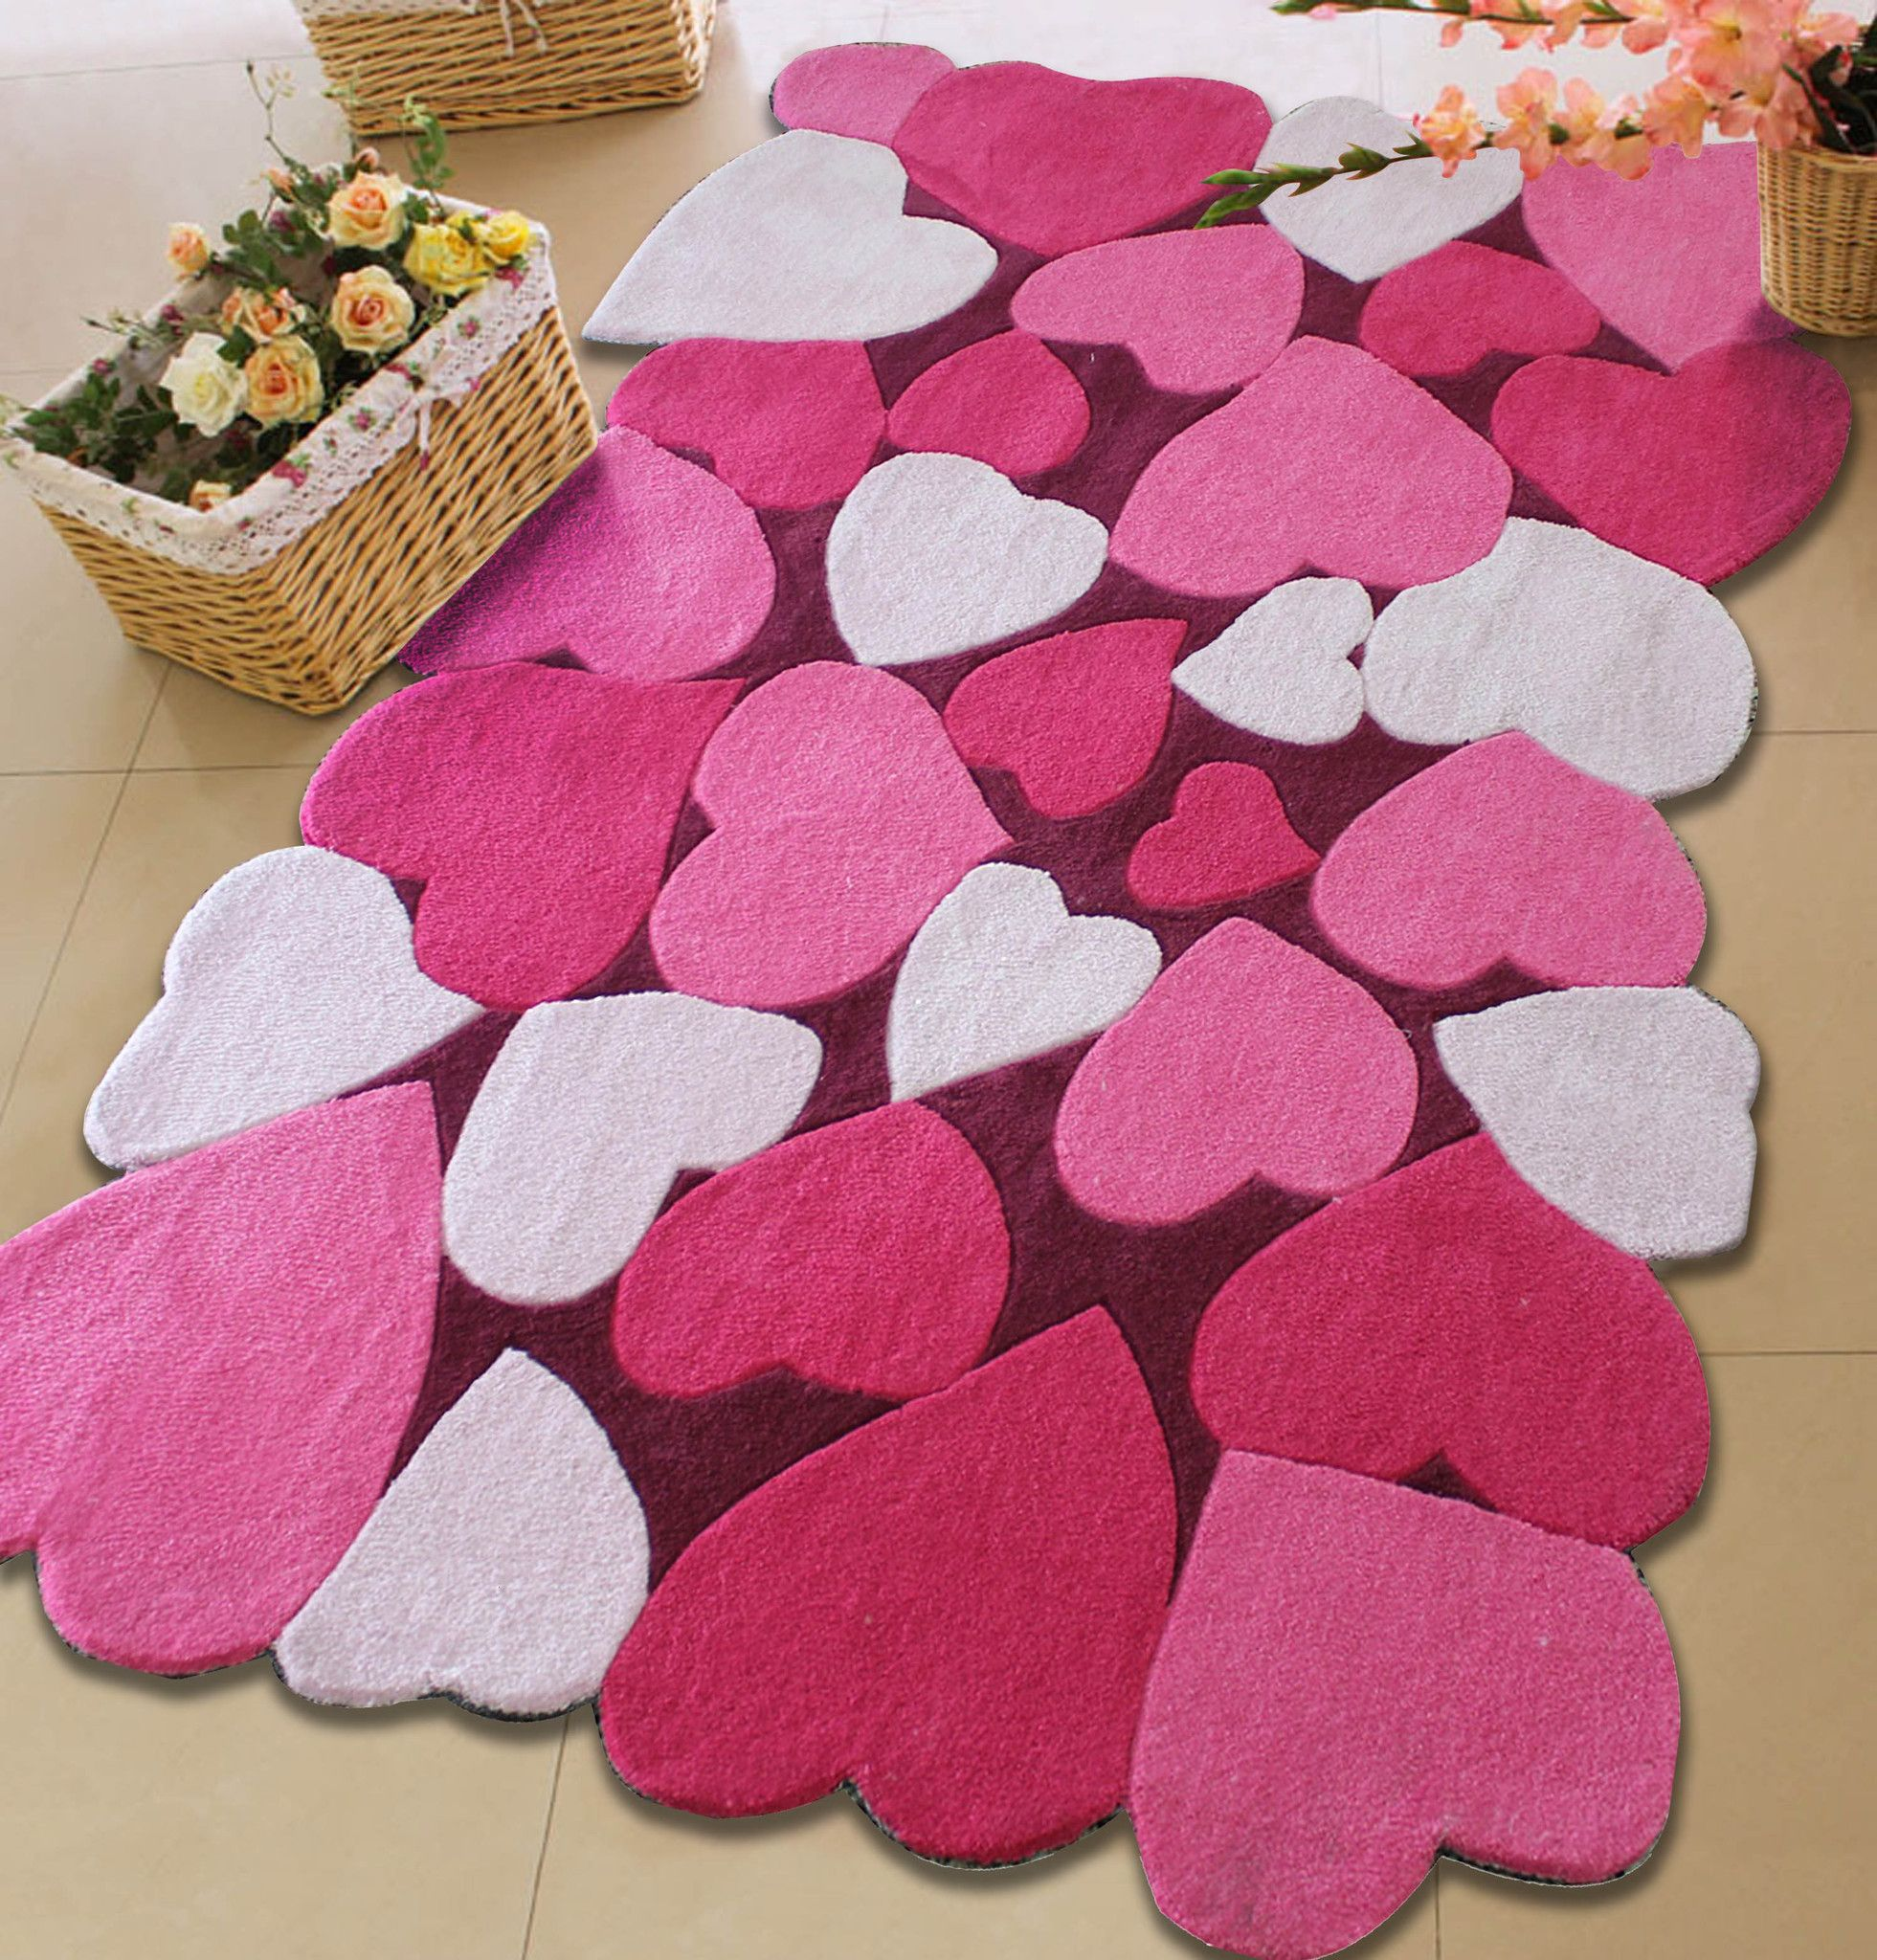 Kids All Pink Bedroom Area Rug With Hearts Patterns